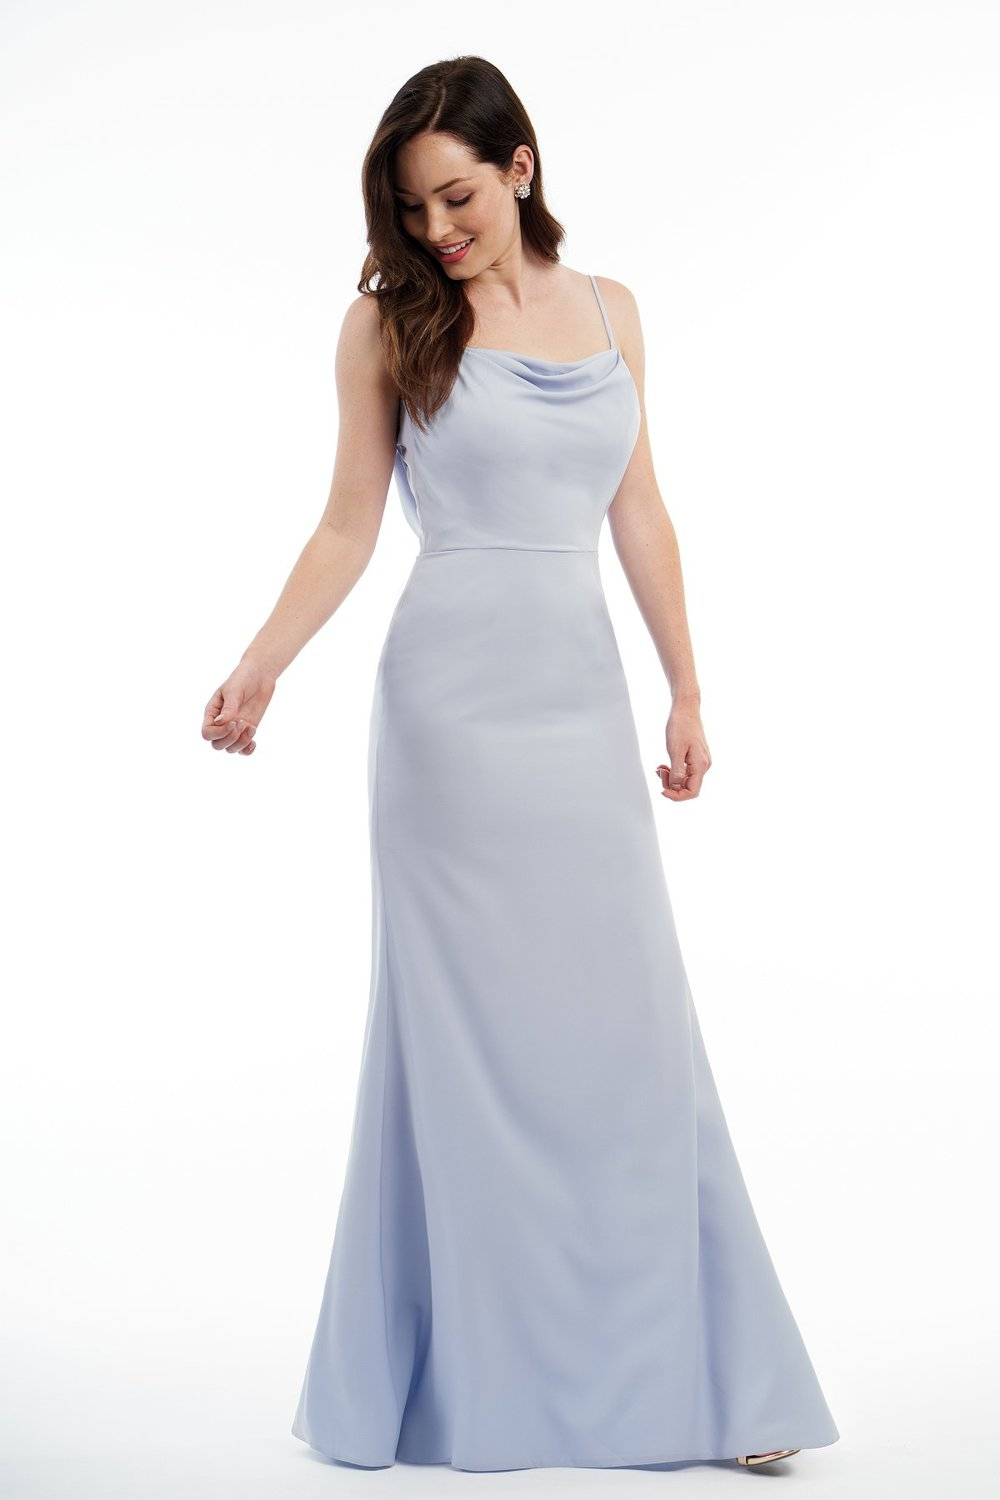 P216013 -  Beautiful soft crepe floor length bridesmaid dress with a cowl neckline and spaghetti straps. Layered fabric on the back bodice that create a U shape and a flattering silhouette to complete the look.      Available in 12 colors